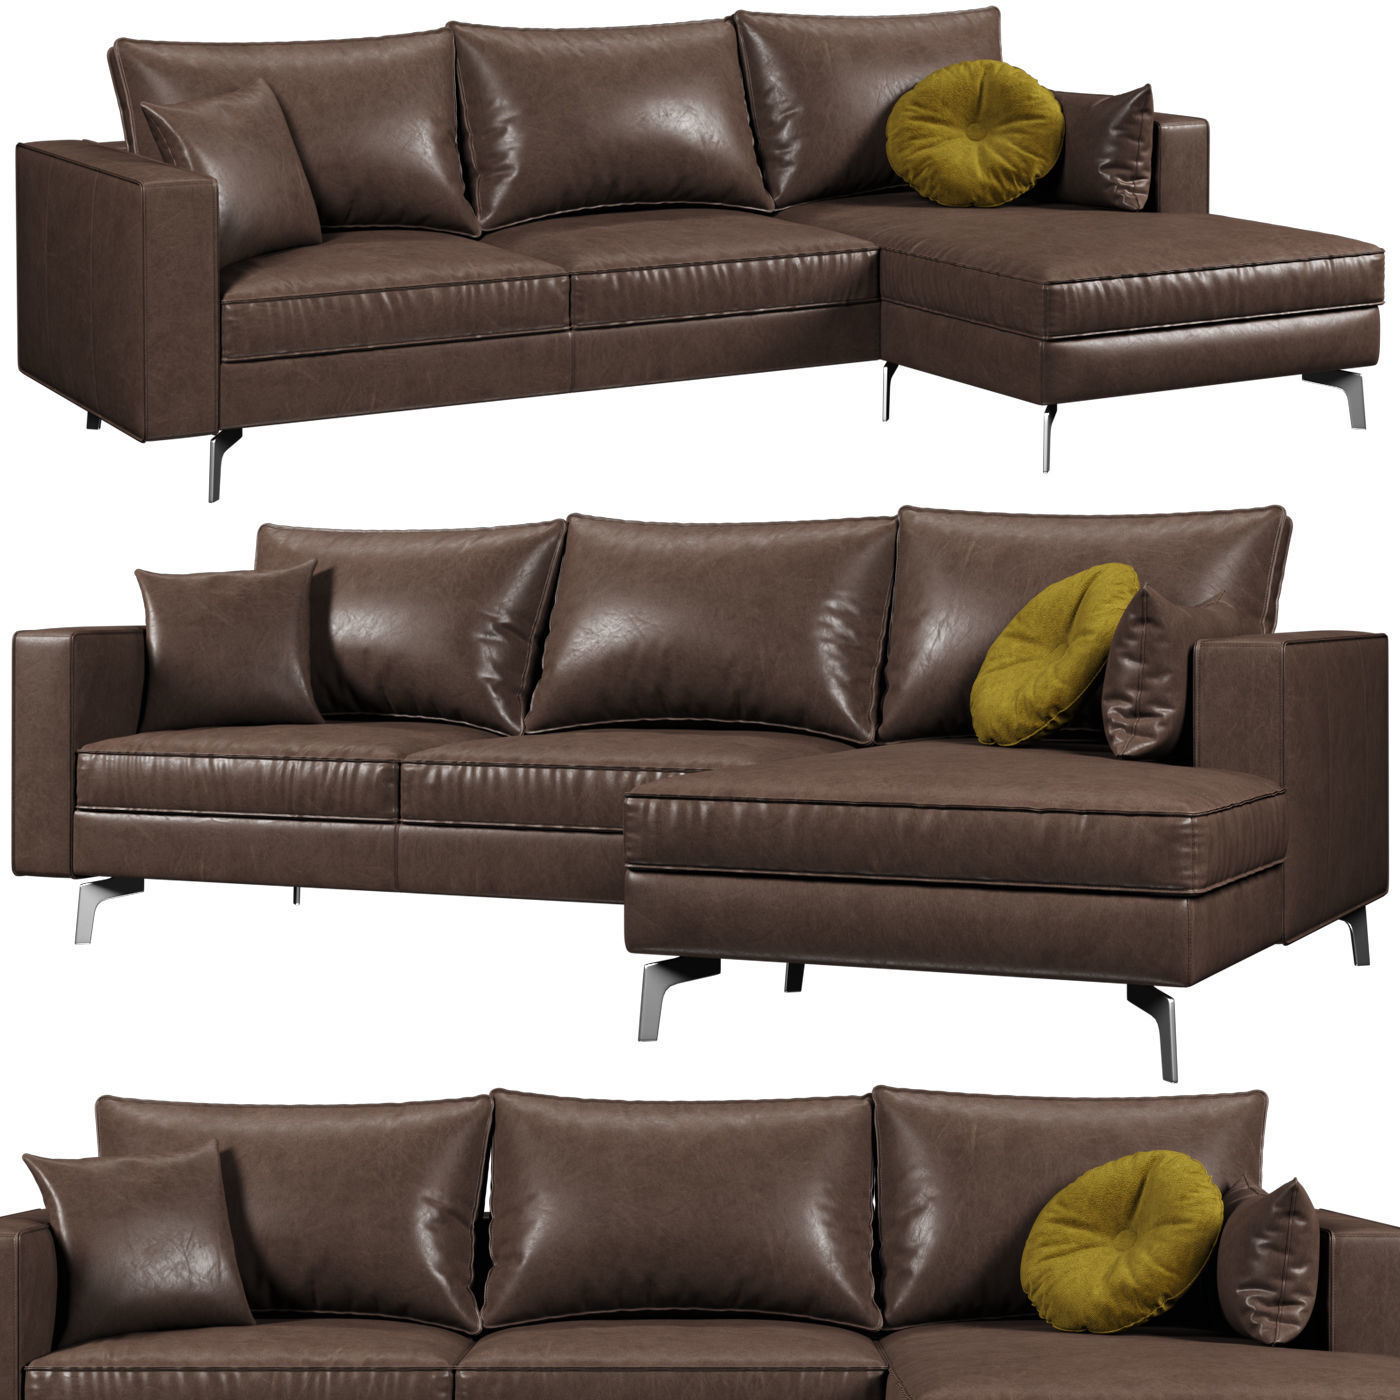 Square Sofa Calligaris Square Sofa 3d Model